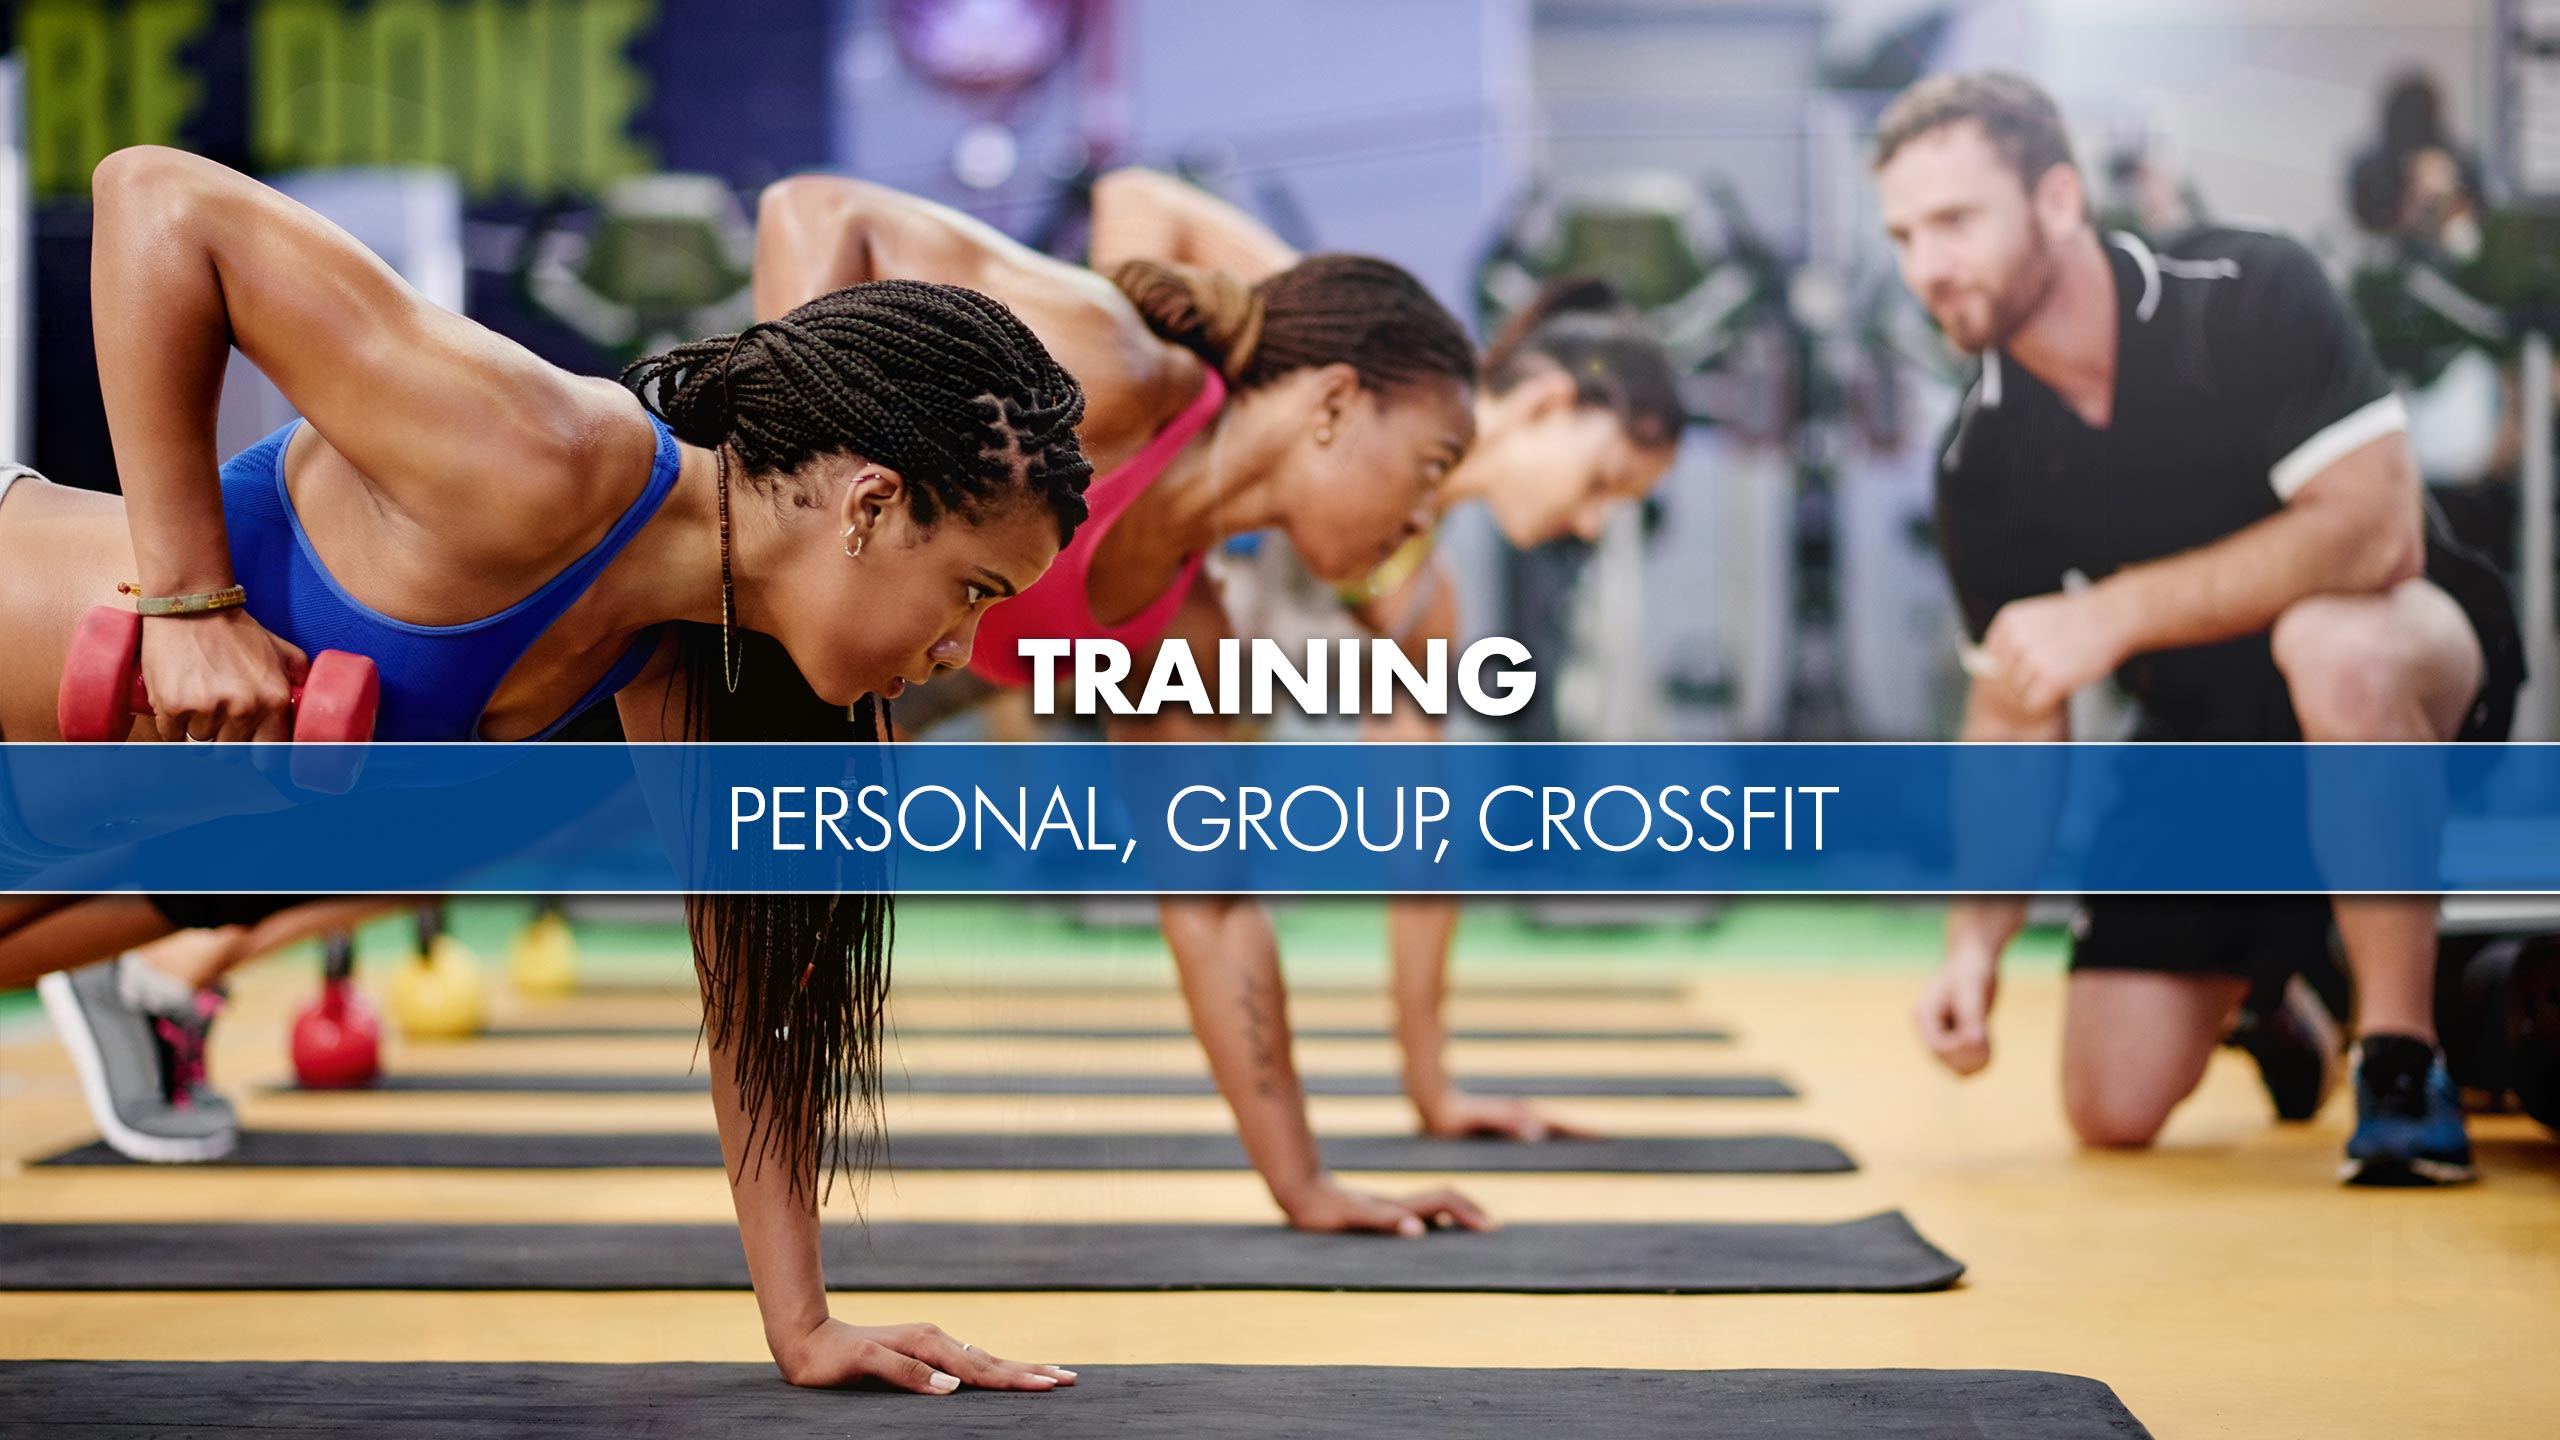 Training - Personal, Group, Crossfit